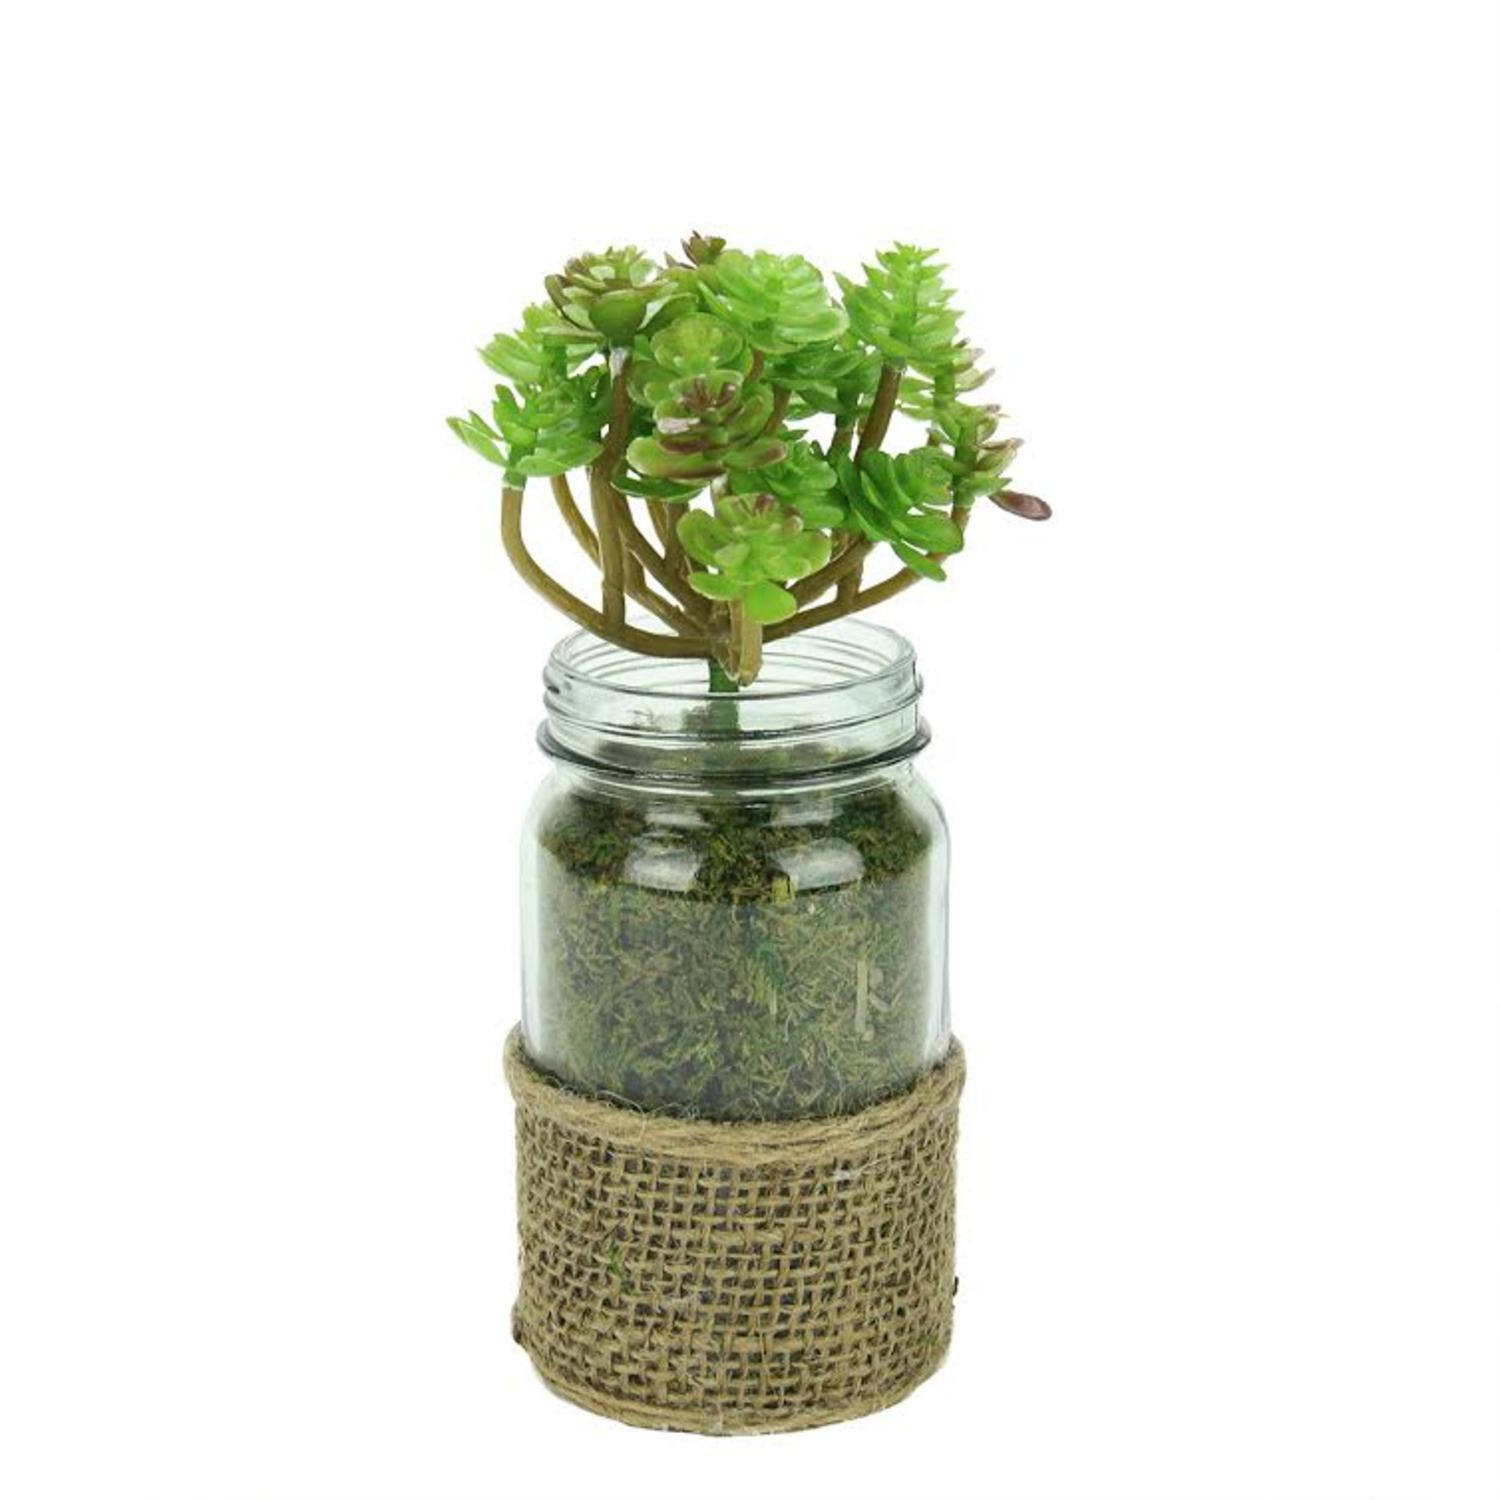 "Melrose 7.25"" Succulent Plant Artificial Potted Plant in Glass and Burlap Jar - Green/Brown"